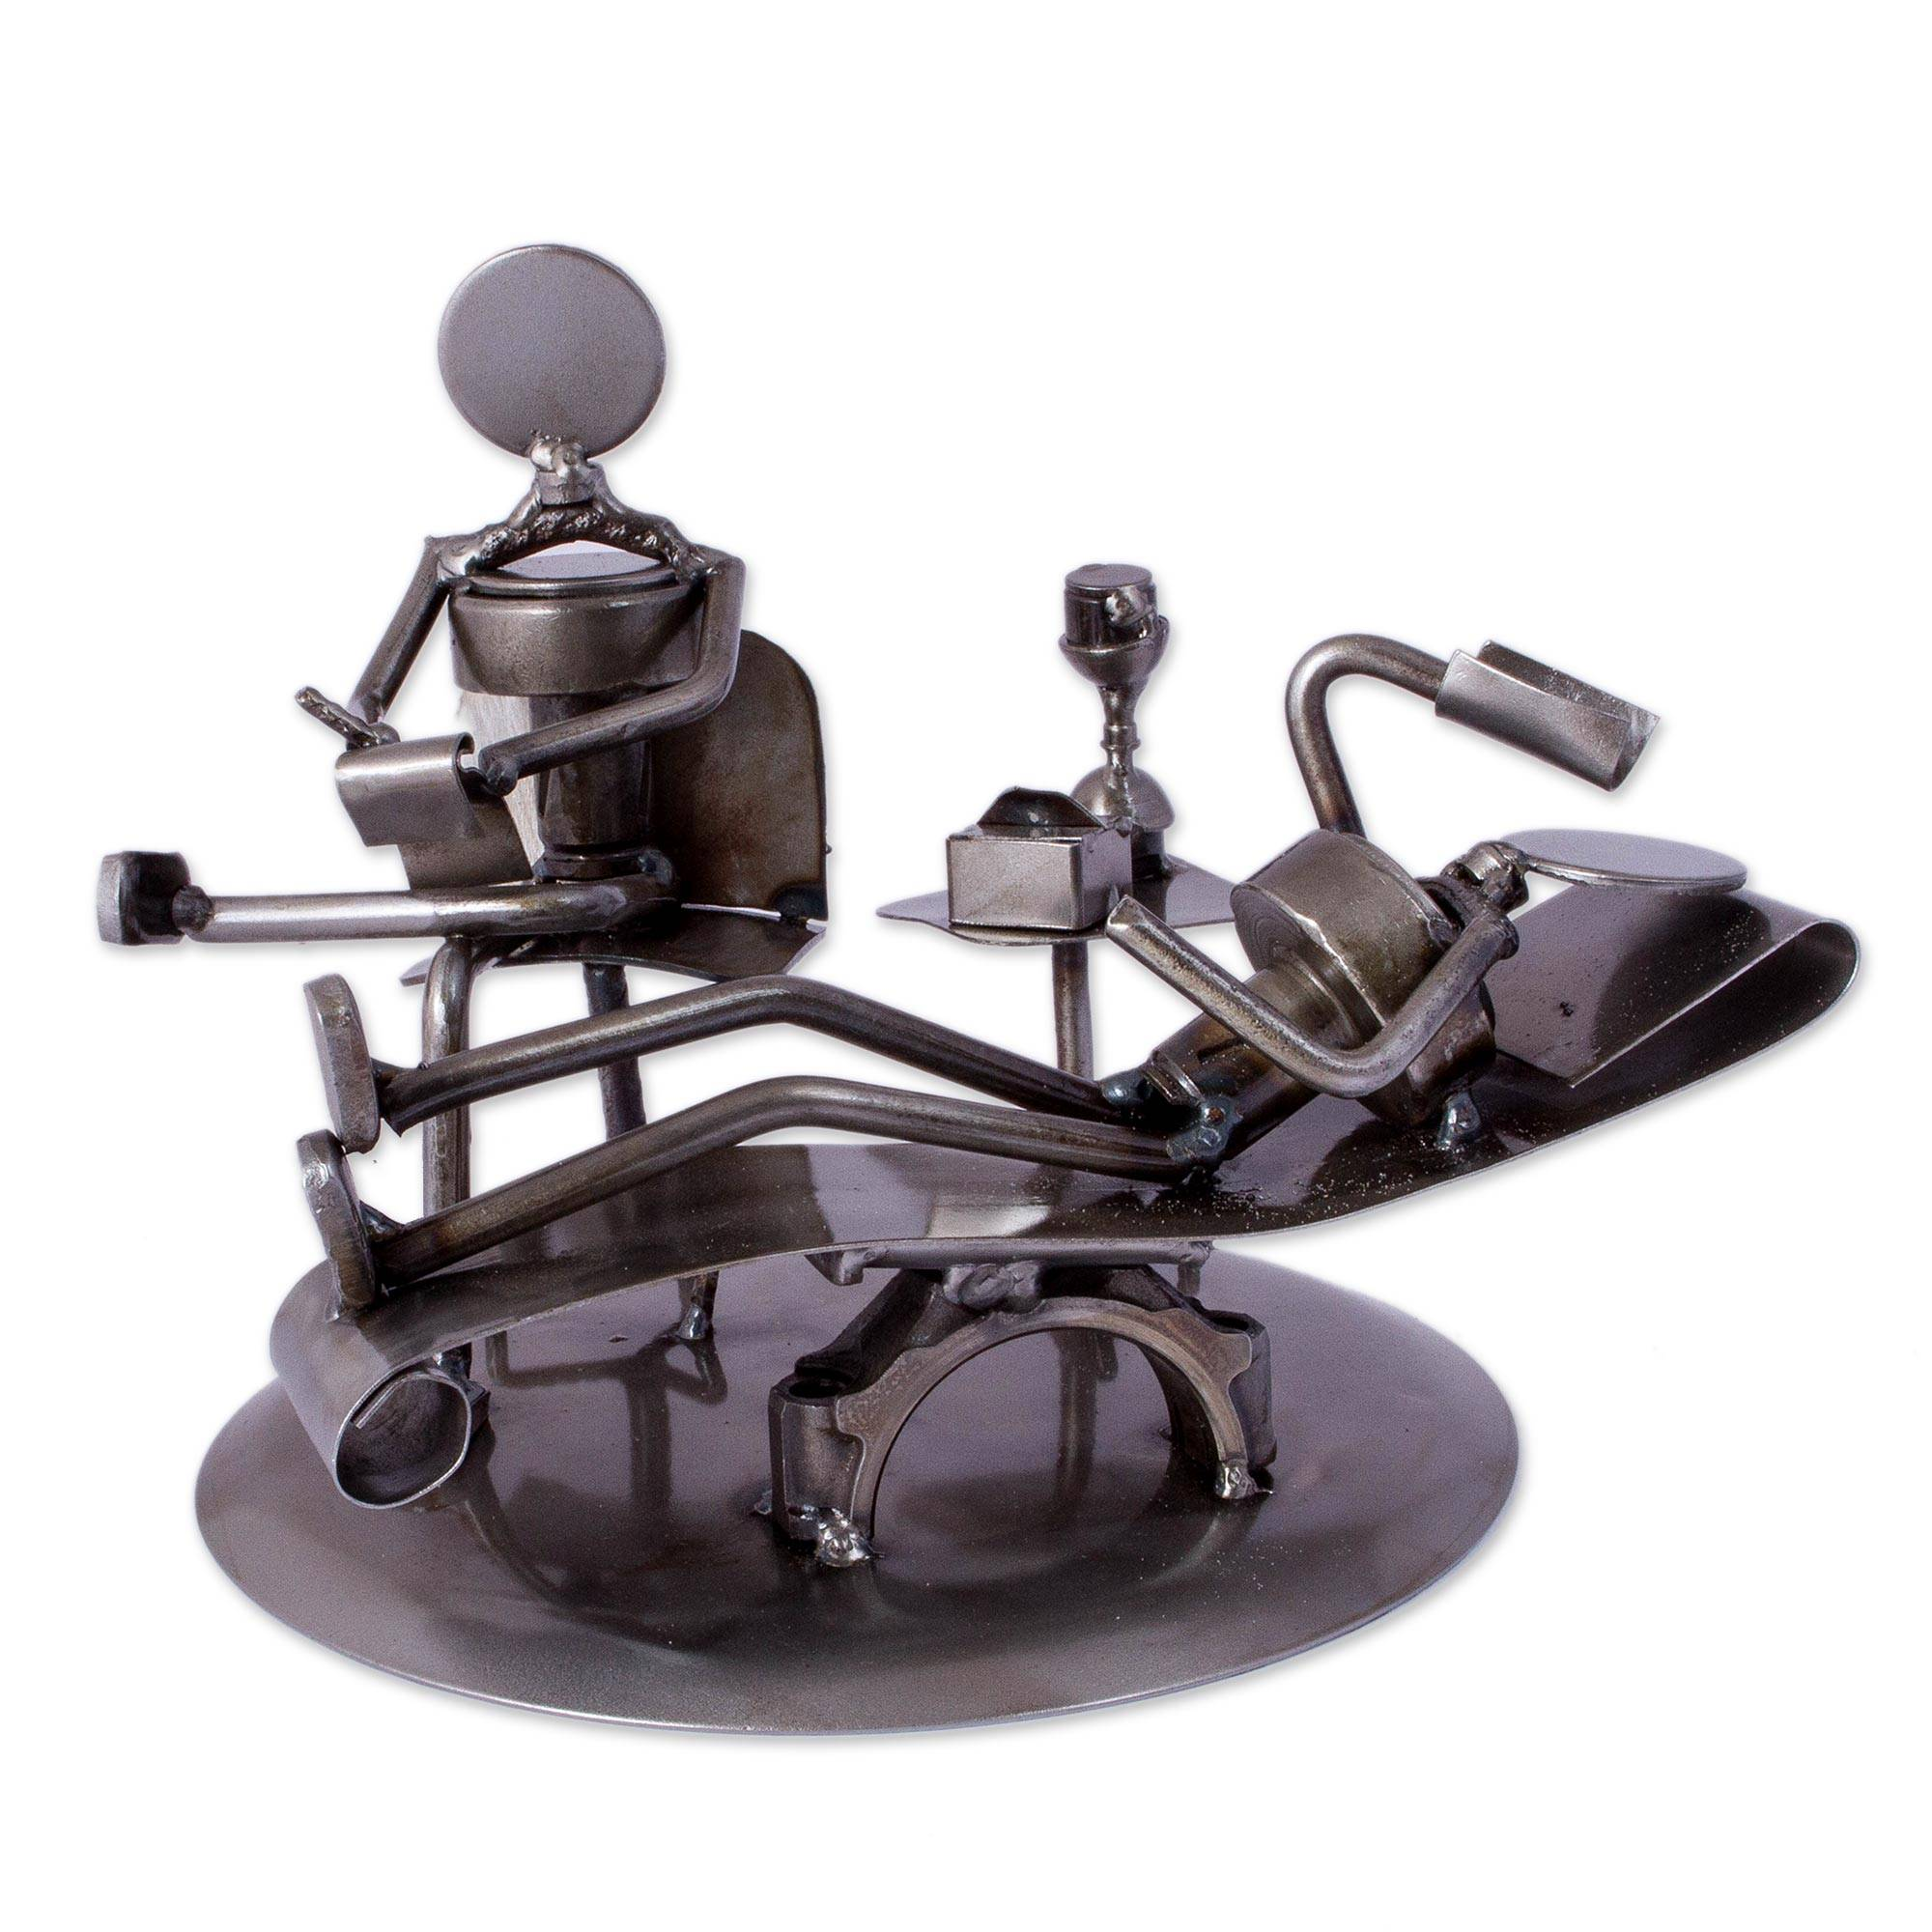 Upcycled Metal Rustic Psychiatrist Sculpture from Mexico Rustic